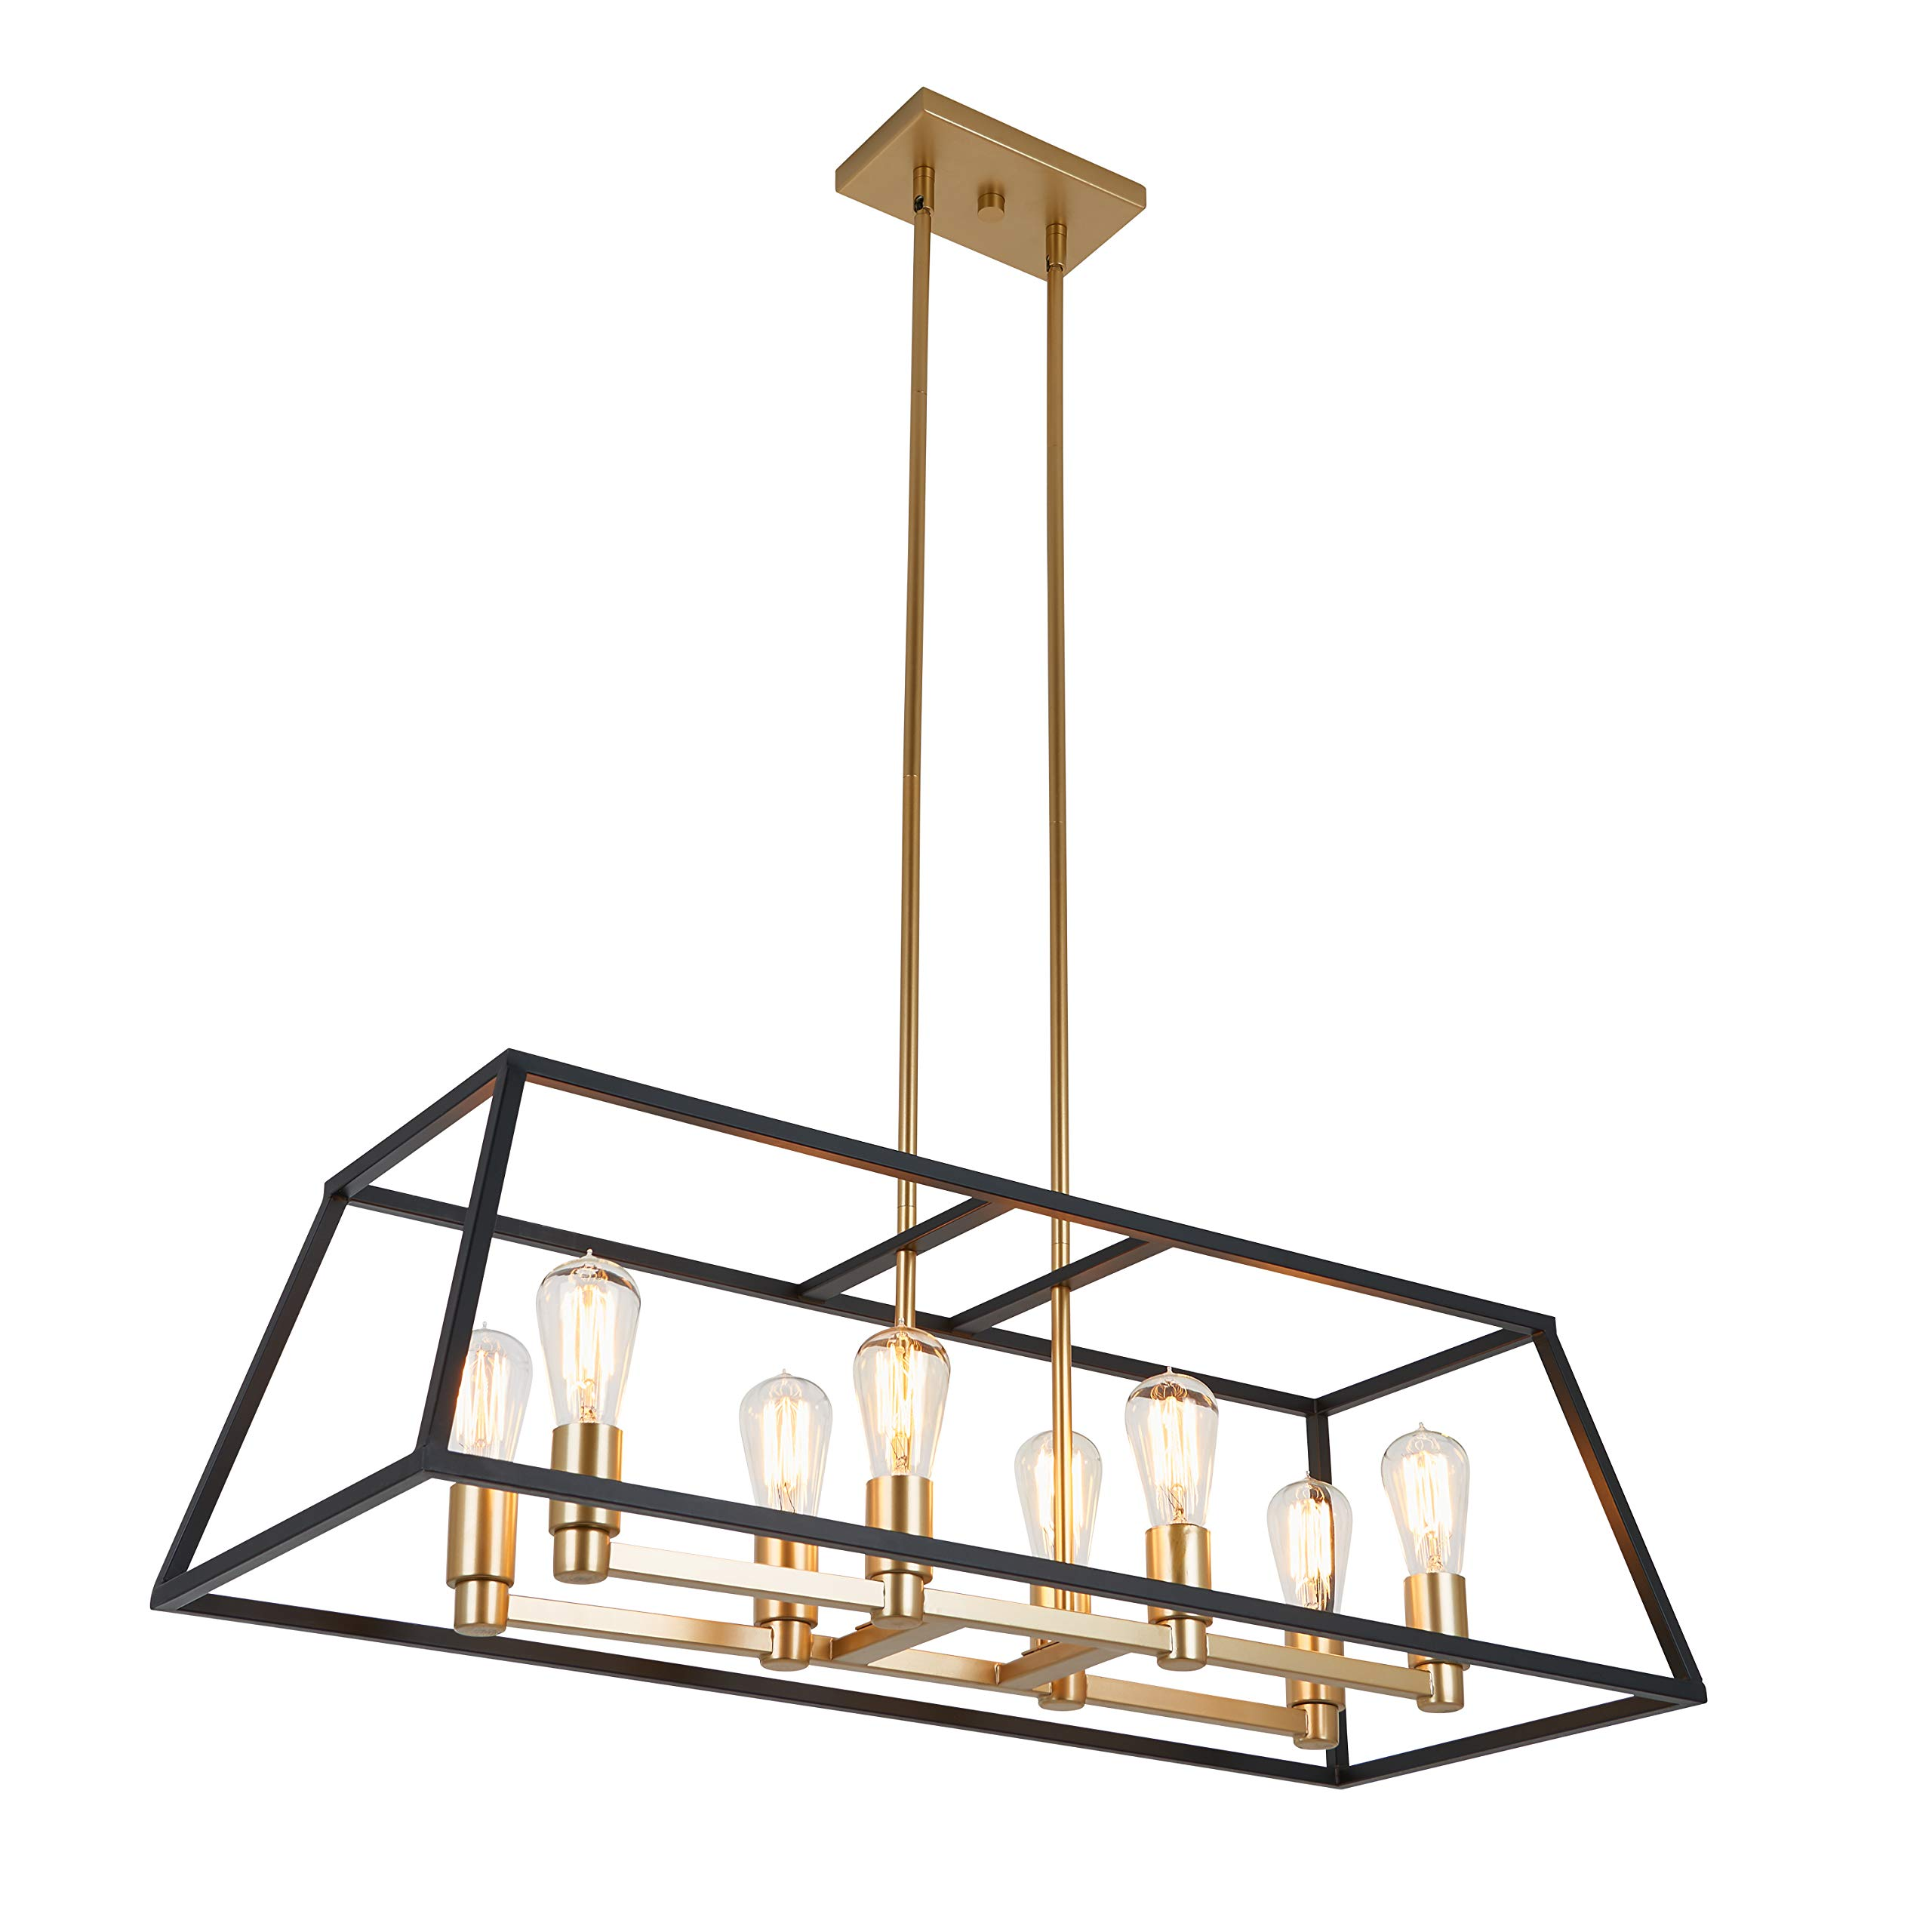 Artika CAR36-ON Rectangular 8 Pendant Light Fixture, Kitchen Island Chandelier, with a Steel Black and Gold Finish, Age Brass by Artika (Image #1)